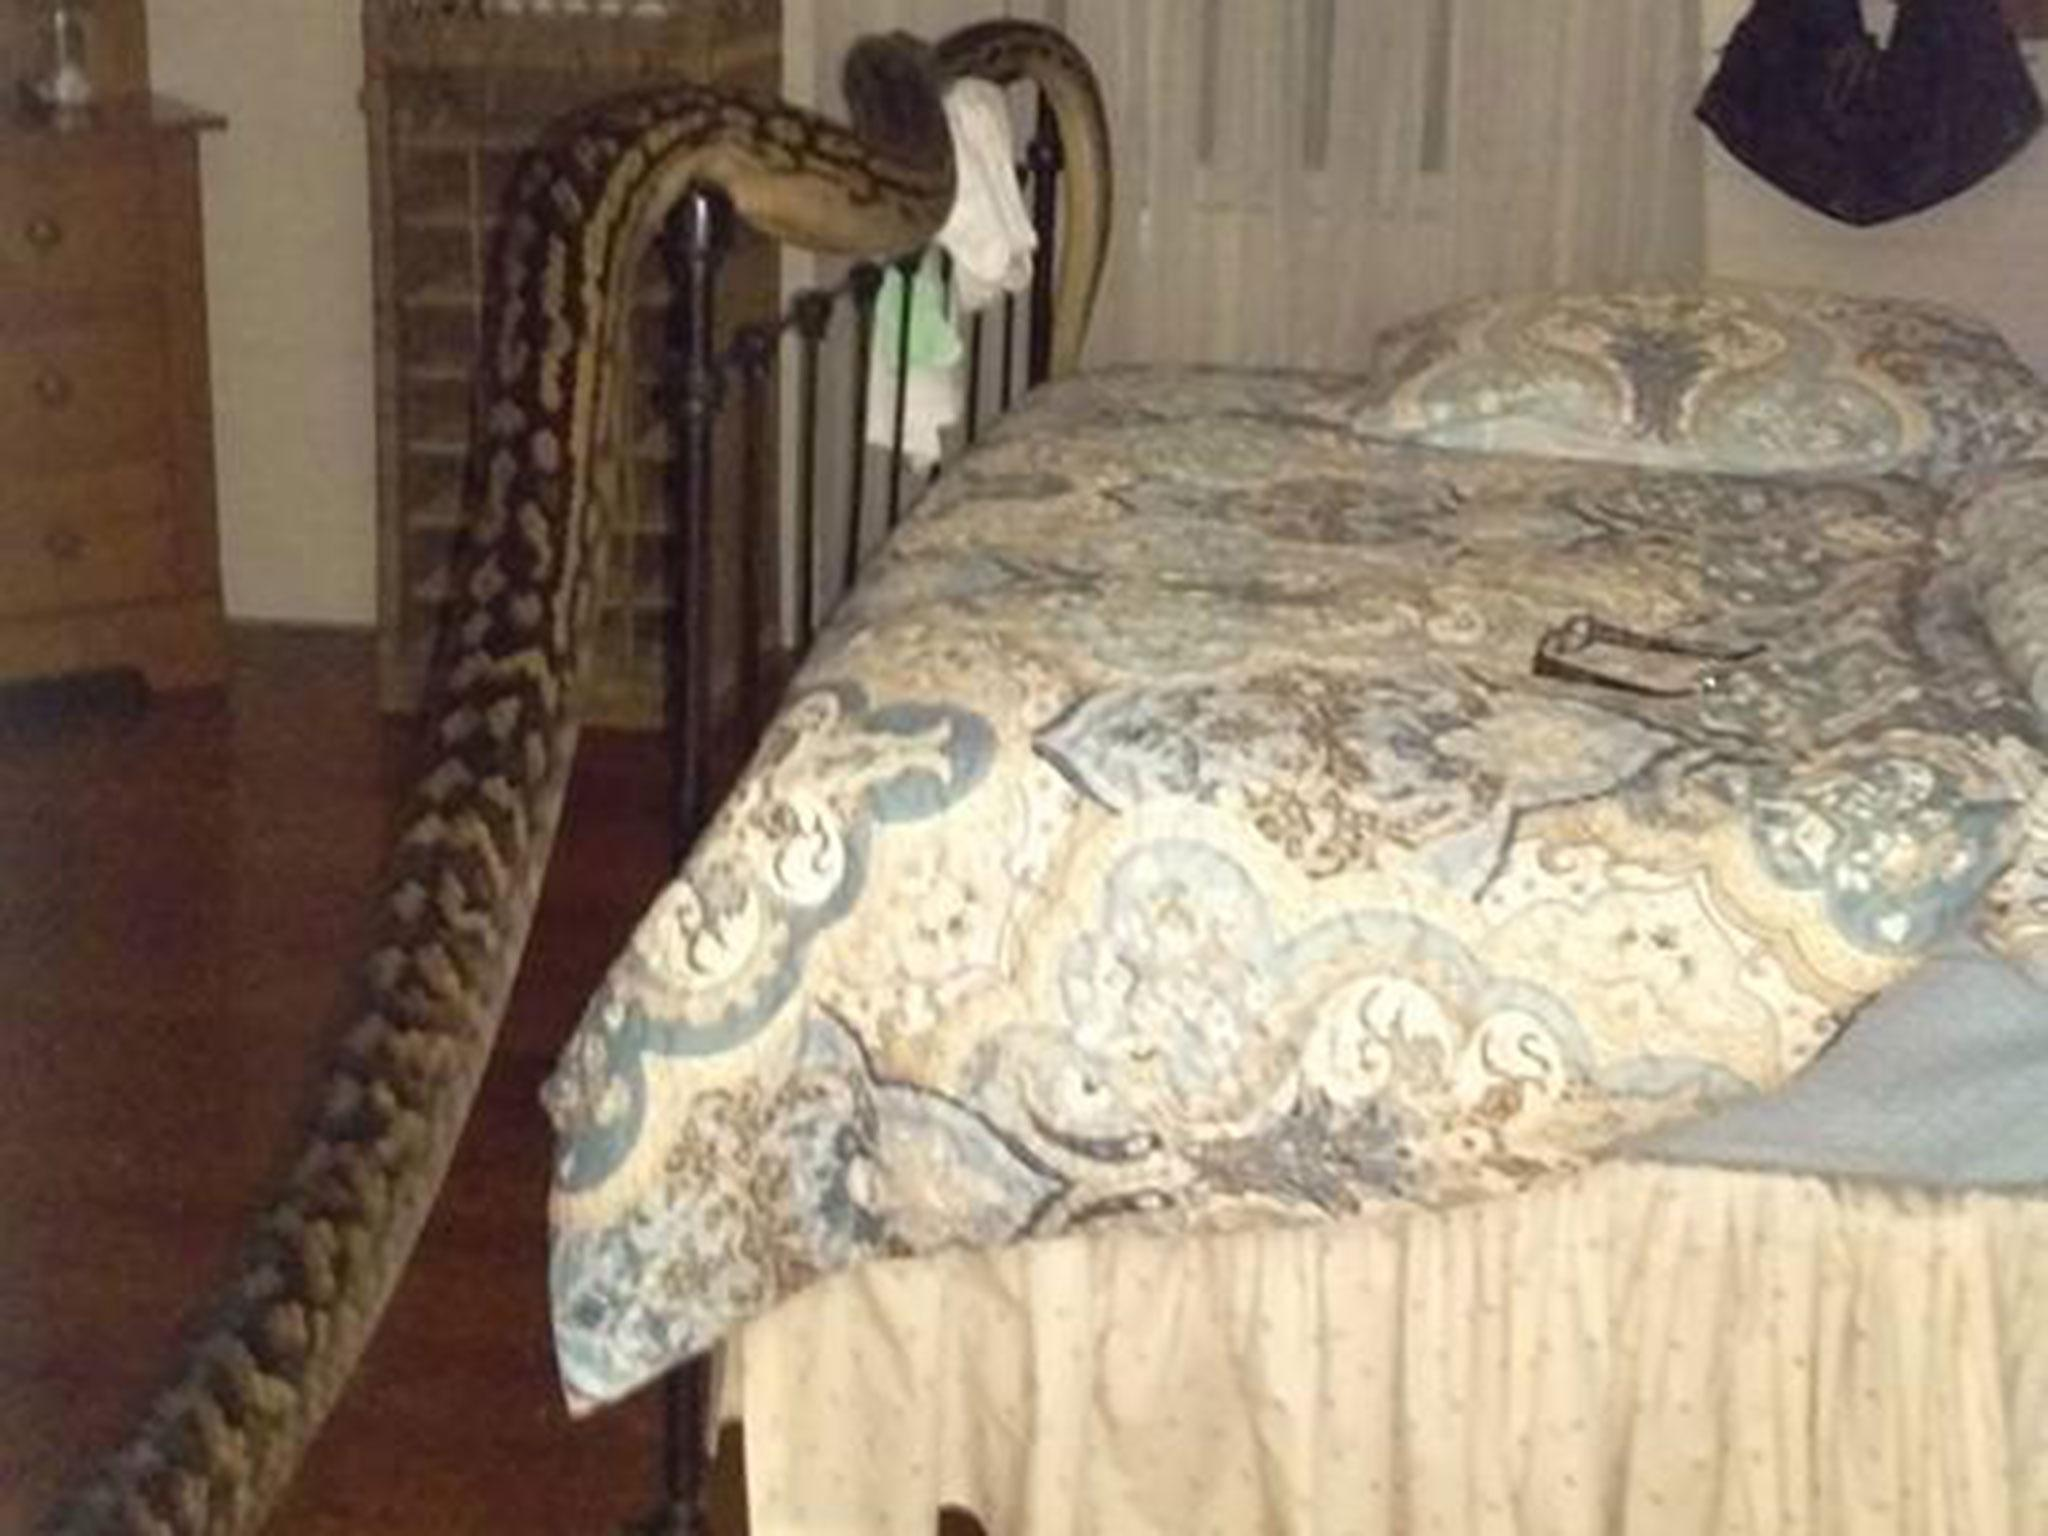 Monster Python Invades Queensland Home In Middle Of The